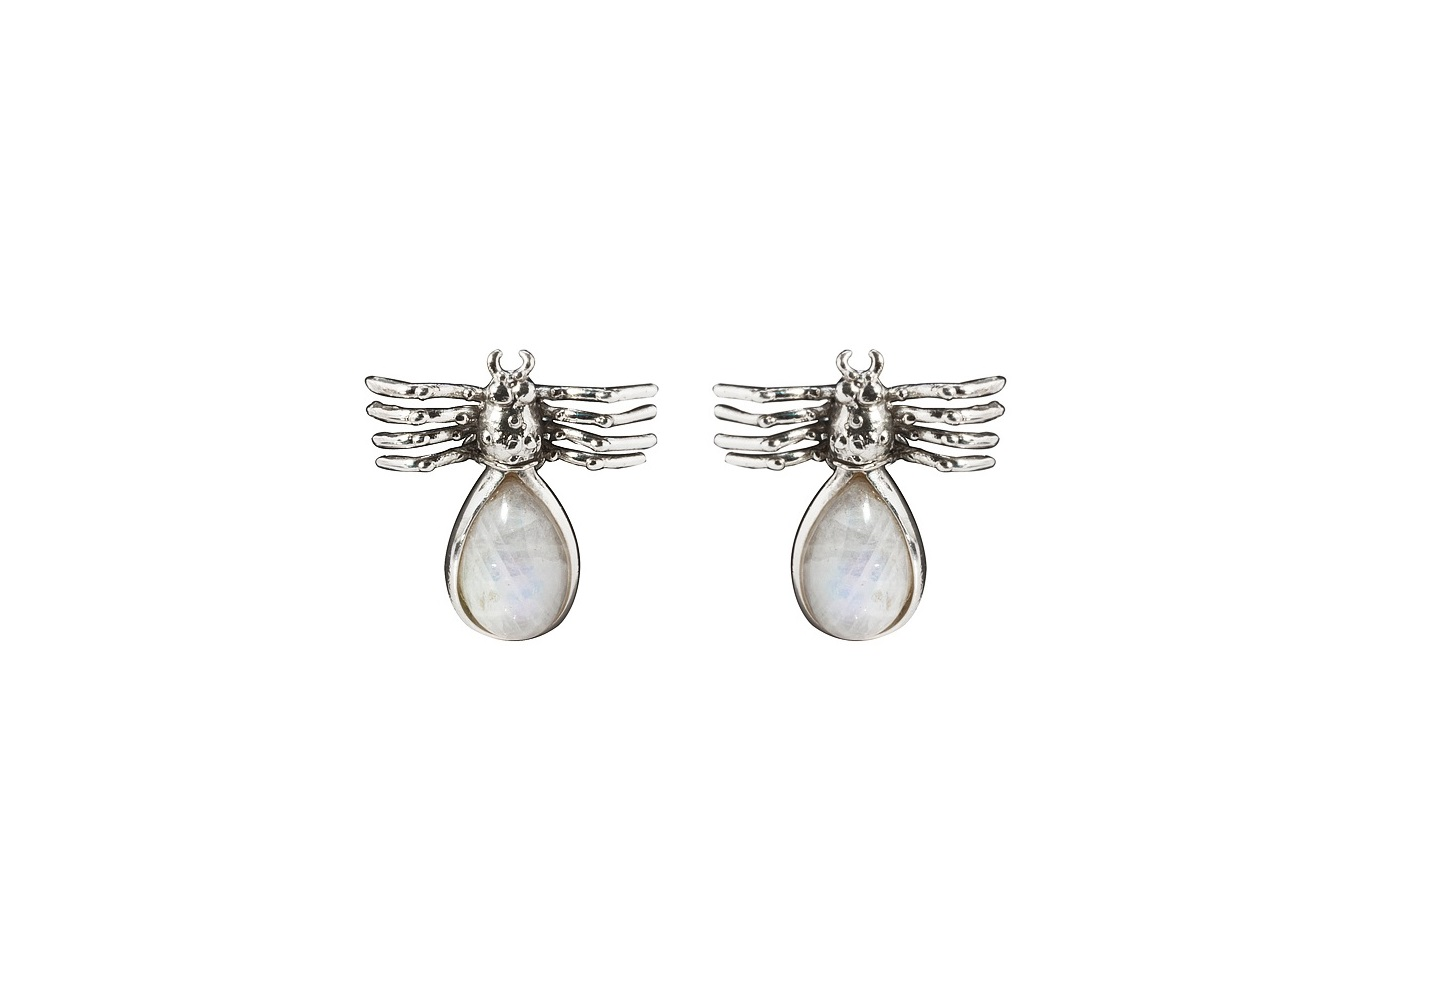 Spider silver earrings with drop labradorite